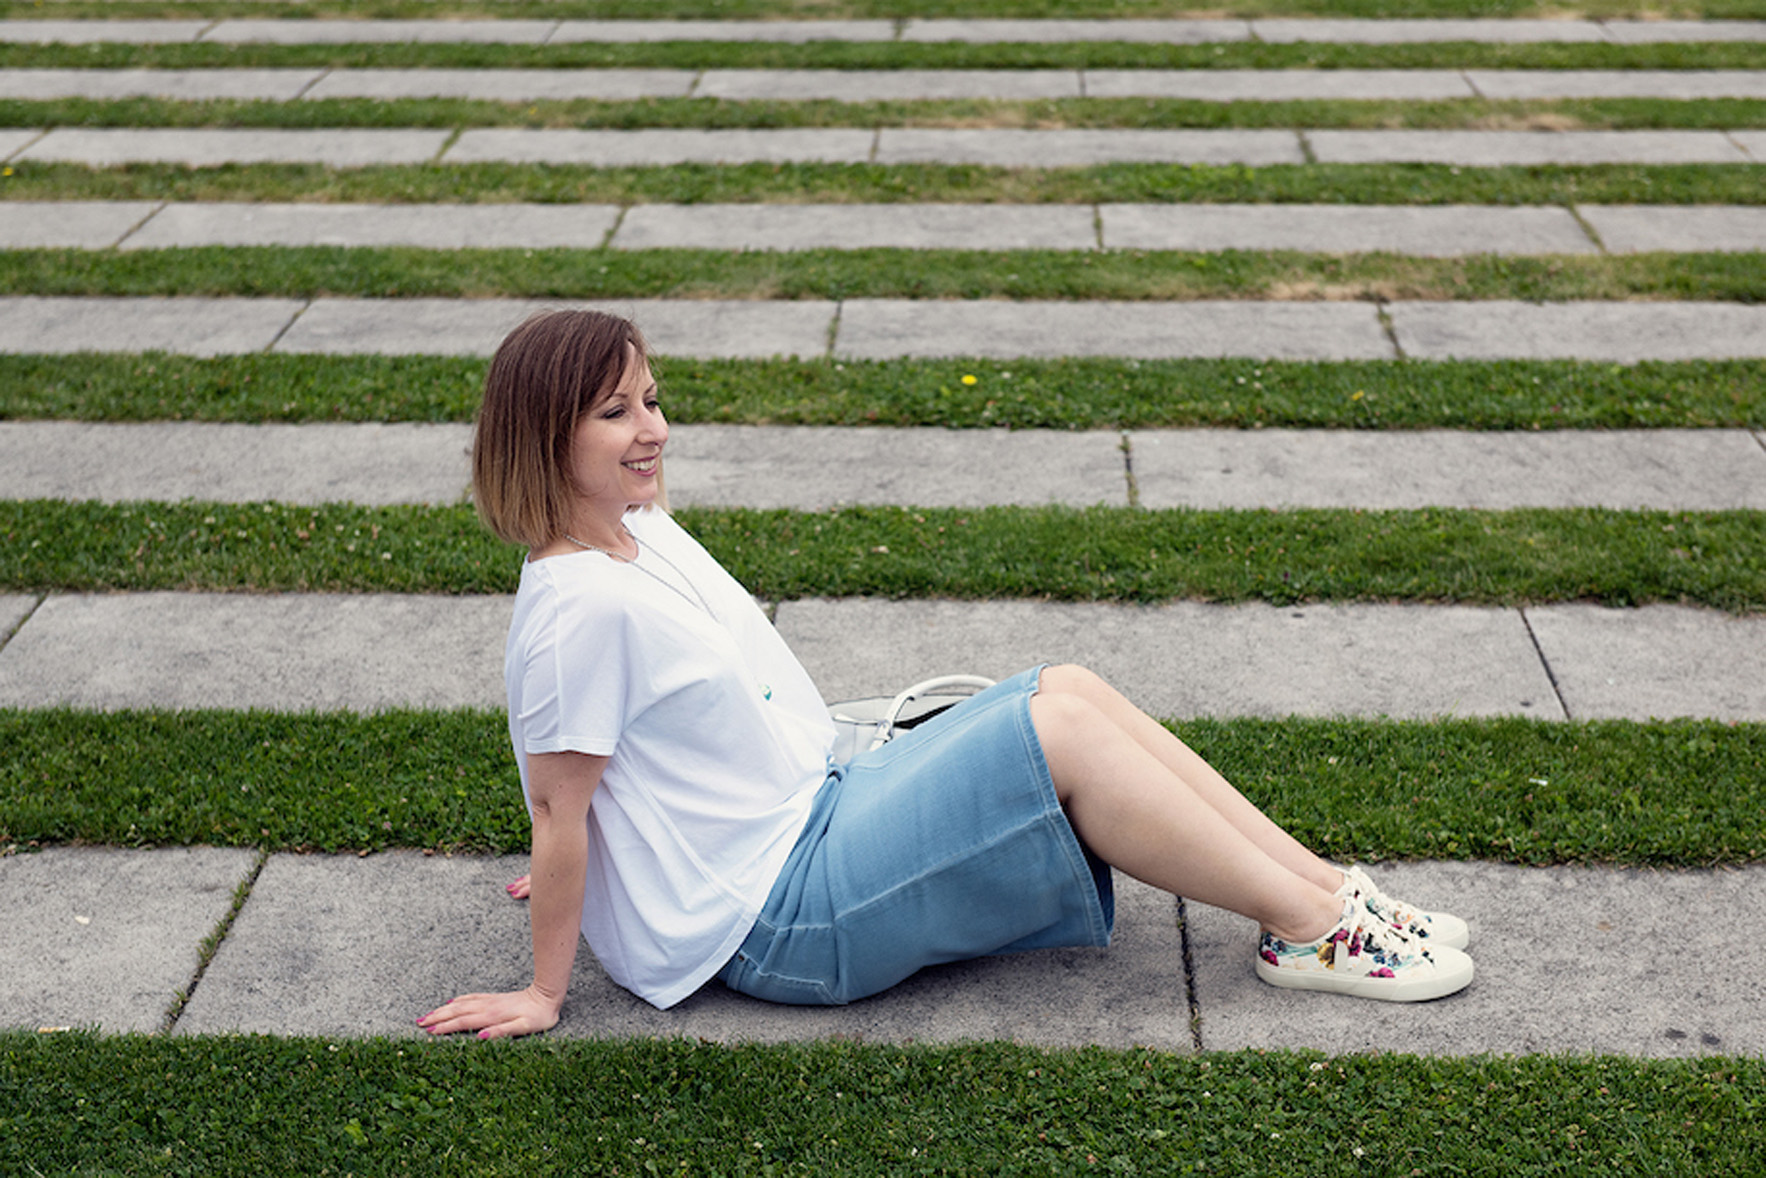 greenlooksgreat-sommer-outfit-sneakers-sitzend